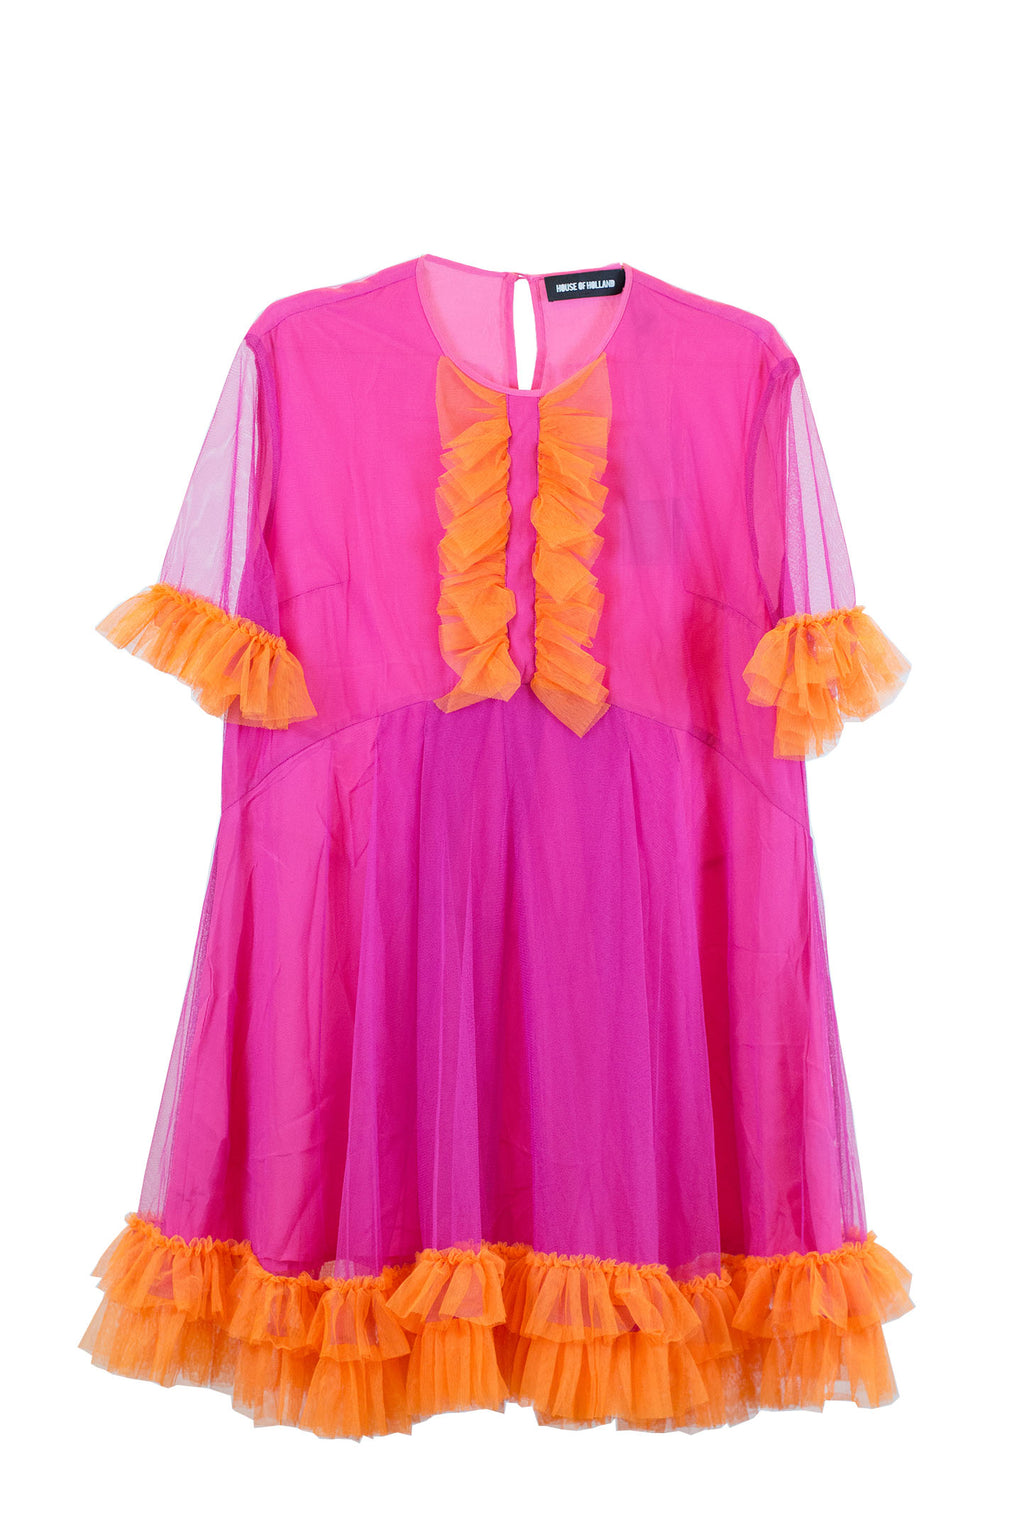 House of Holland - WOMENS TULLE OVER DRESS PINK